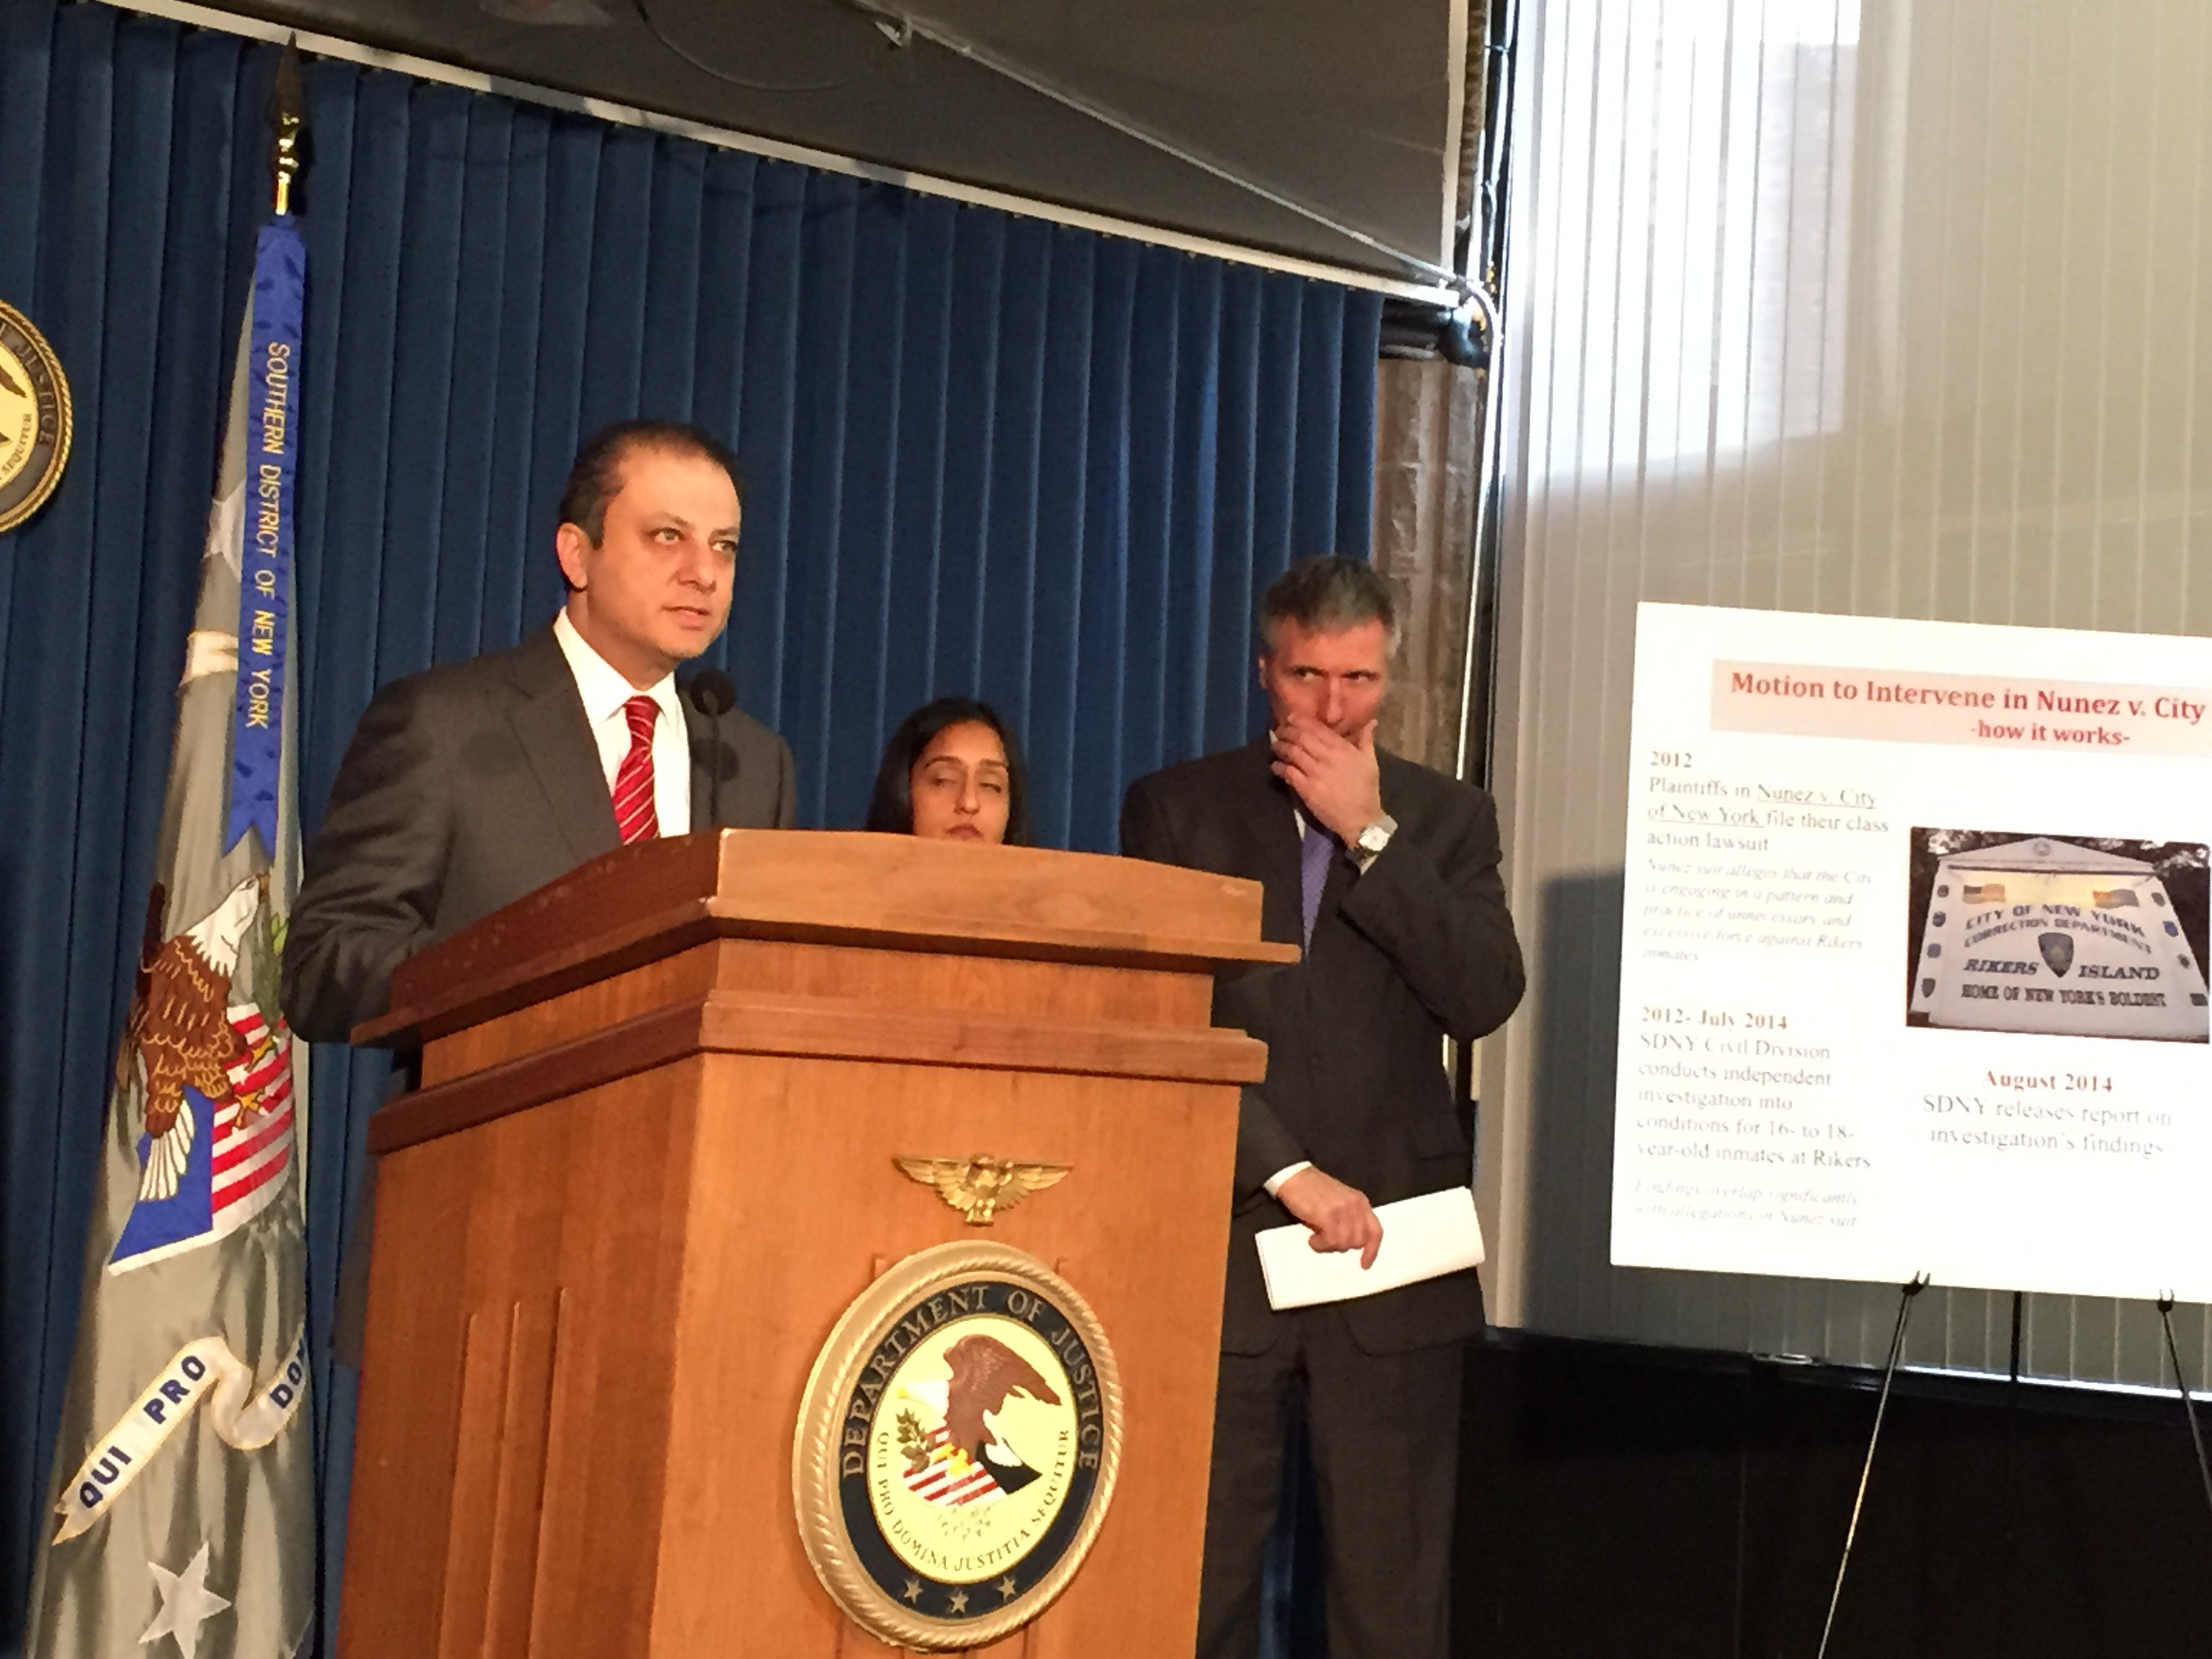 U.S. Attorney Preet Bharara announcing plans to join a lawsuit against the city. (Photo: Jillian Jorgensen)